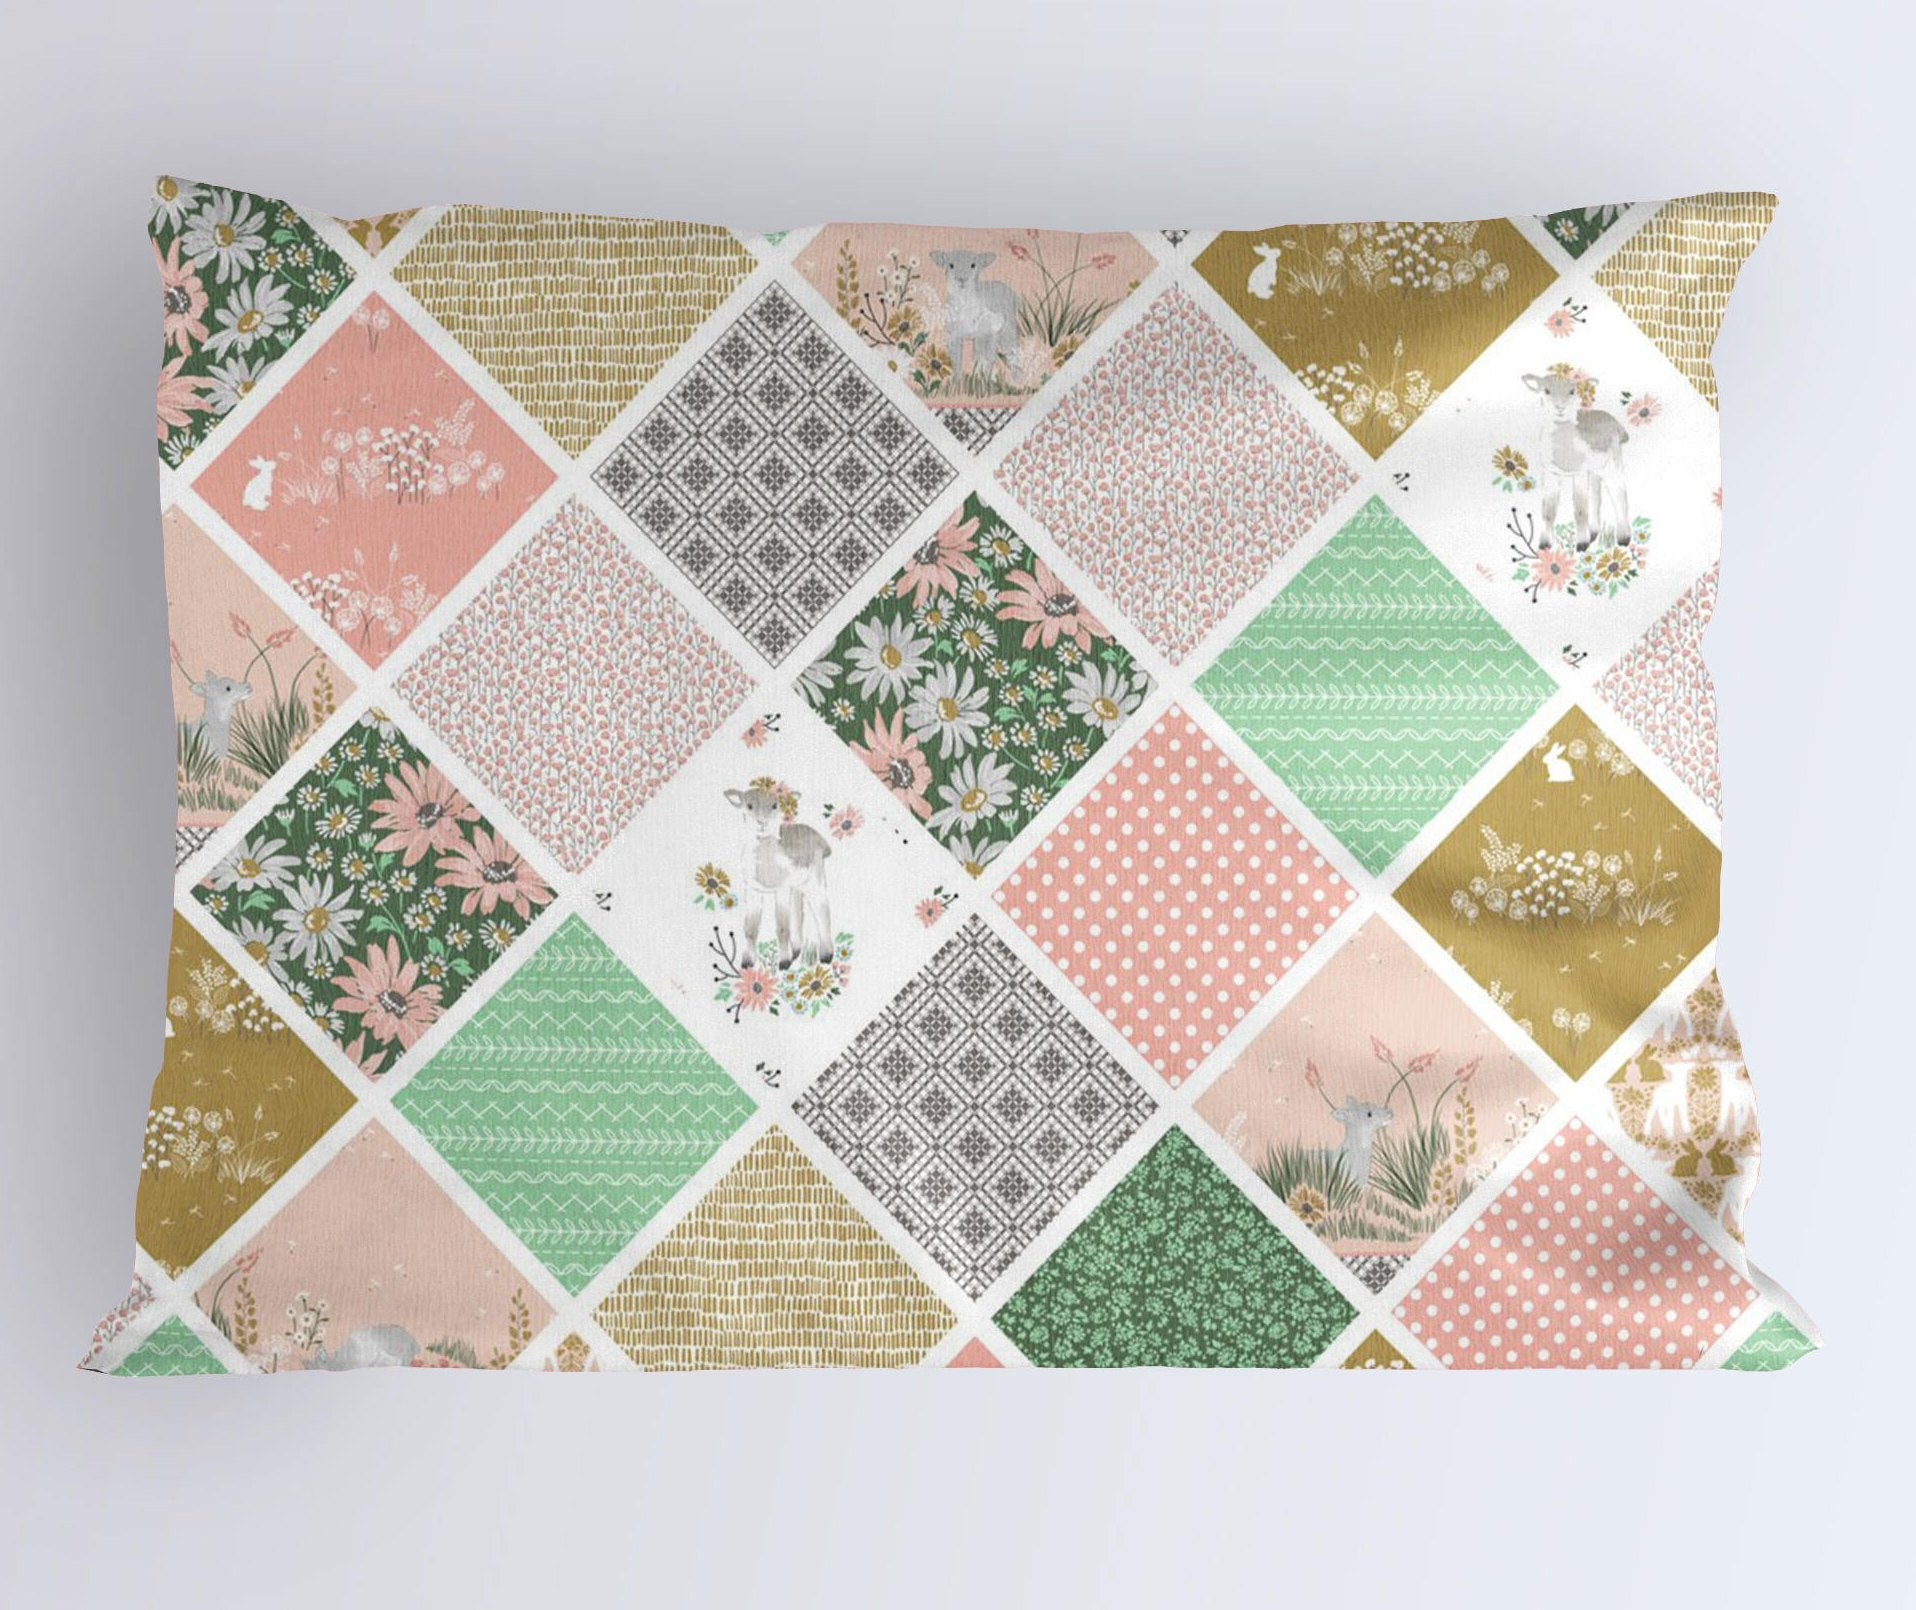 Lamb Pillow Case - Pink Pillowcase - Gold Queen Pillowcase- Floral King Pillowcase- Summer Bedding- Girls Toddler Pillow Covers - Dorm Decor - Dream Evergreen @DreamEvergreen